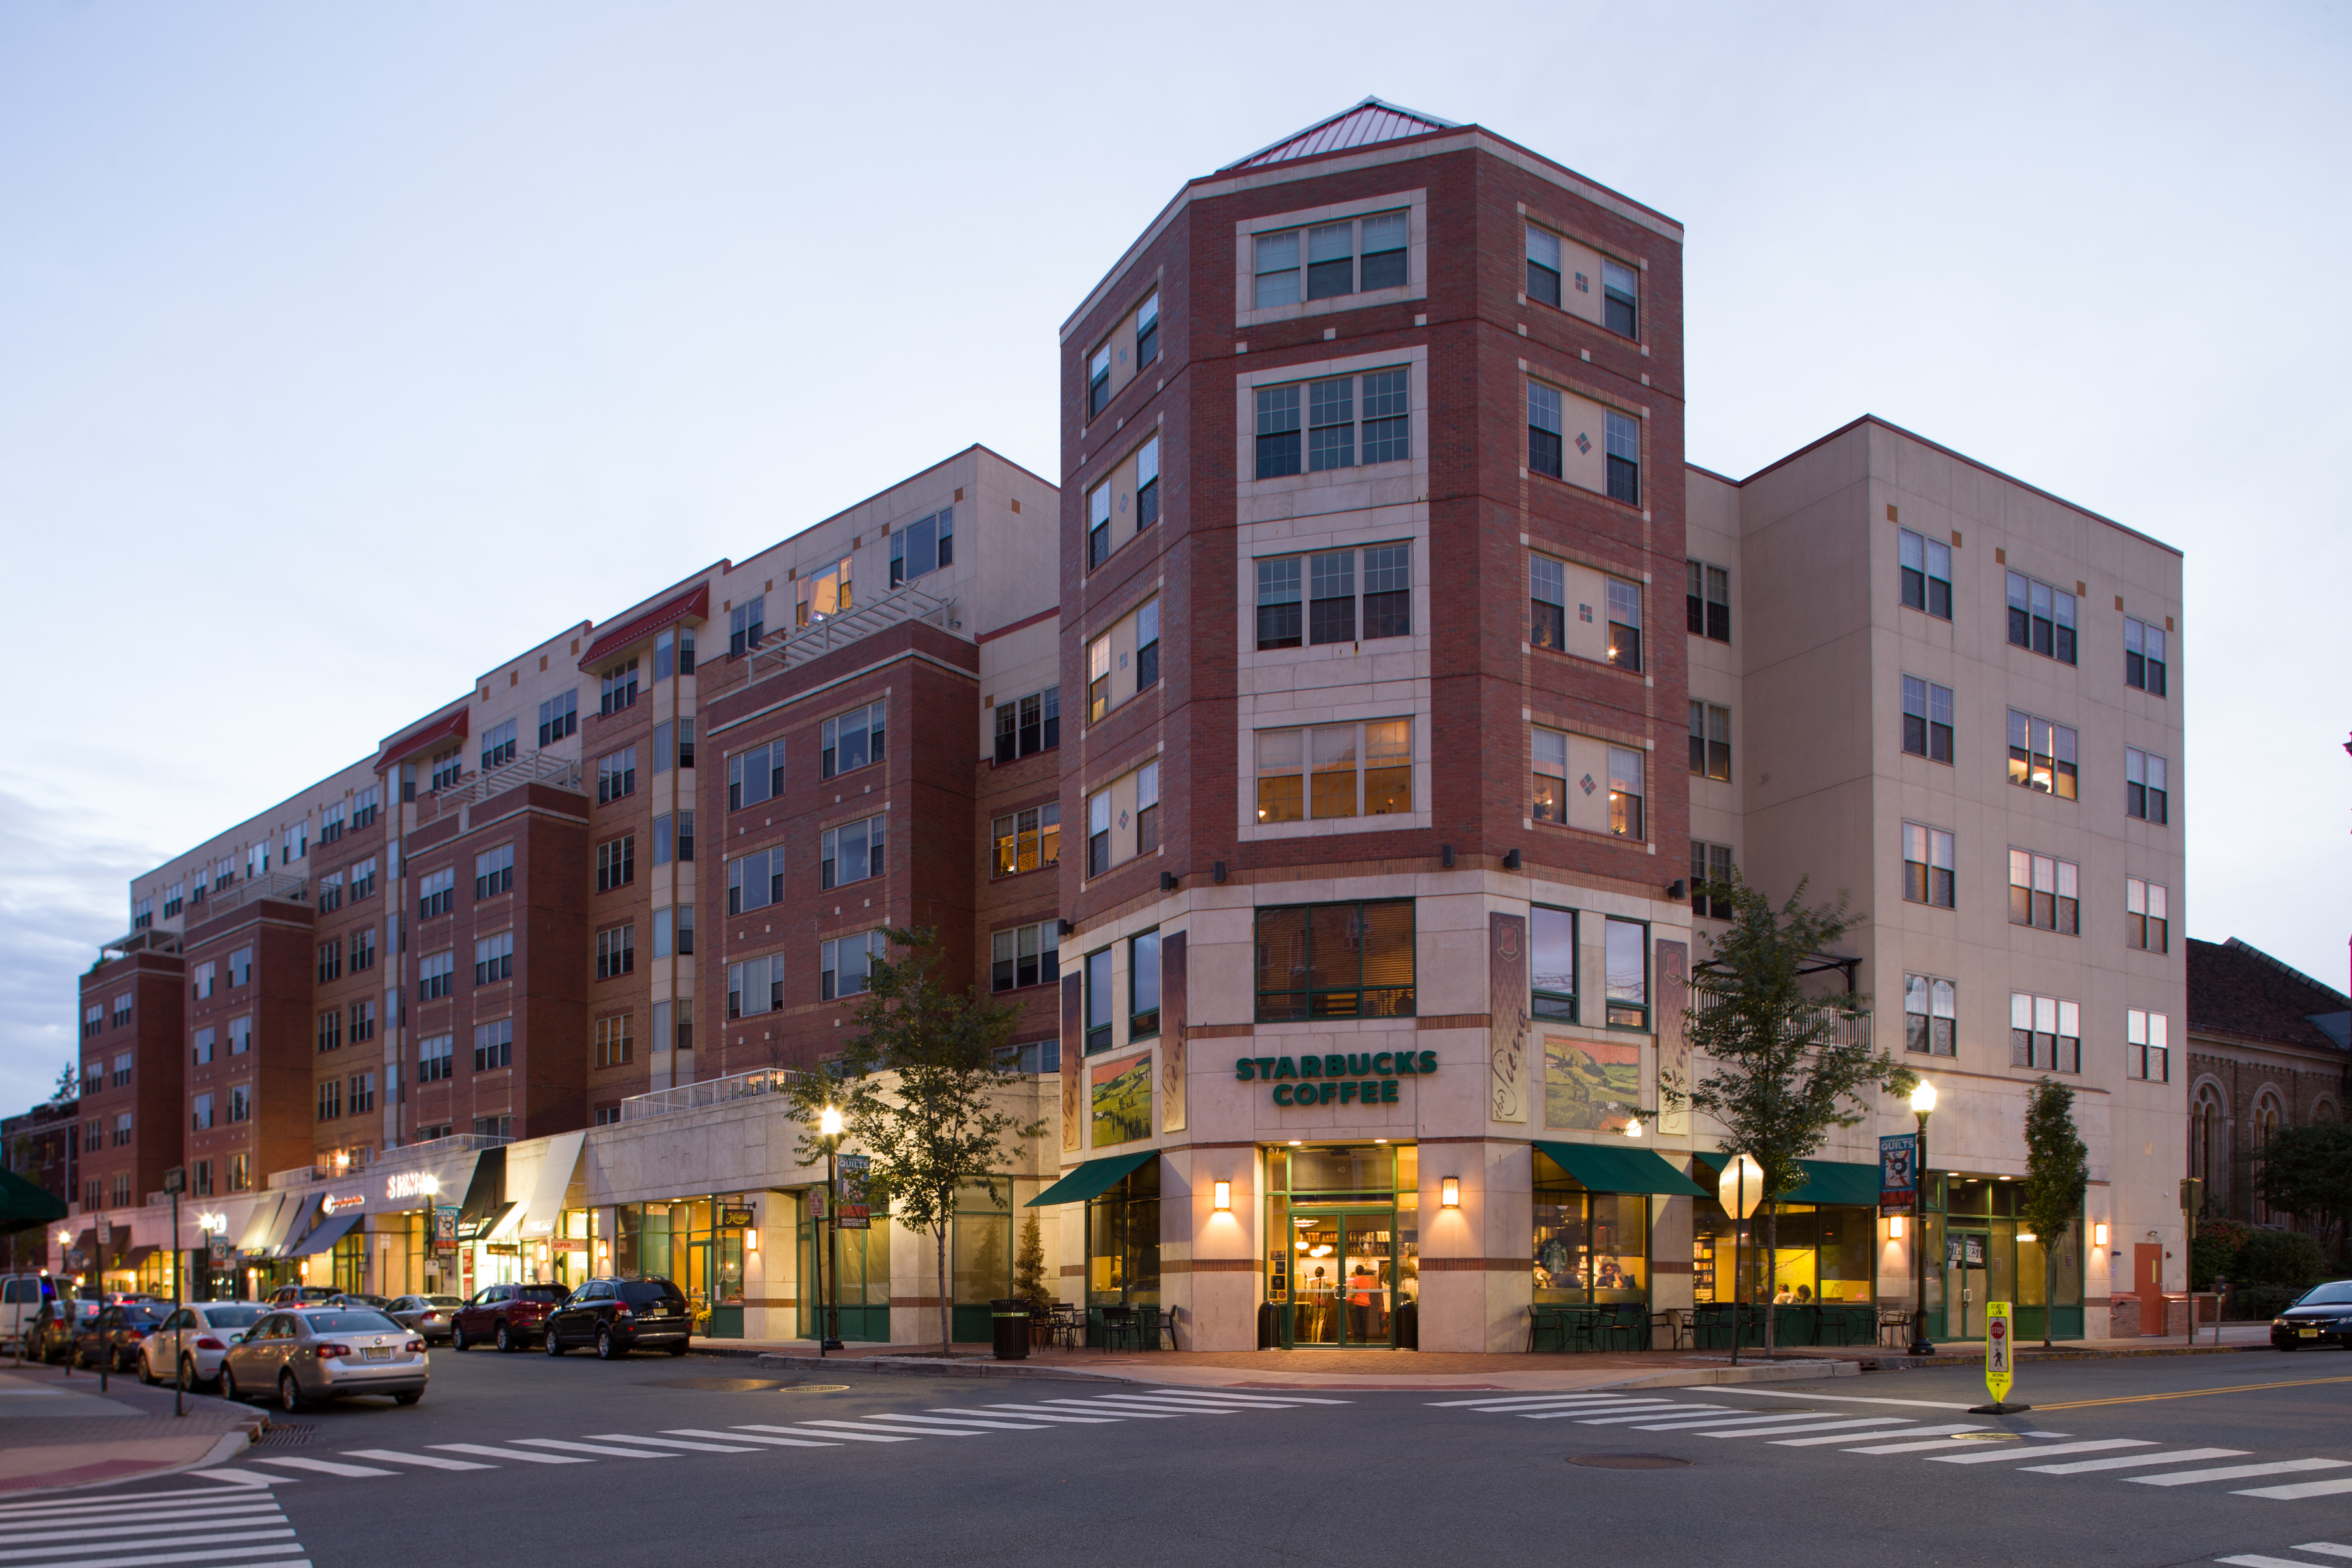 Living In Montclair Nj : The Pinnacle Companies Announces New Retailers at The ...